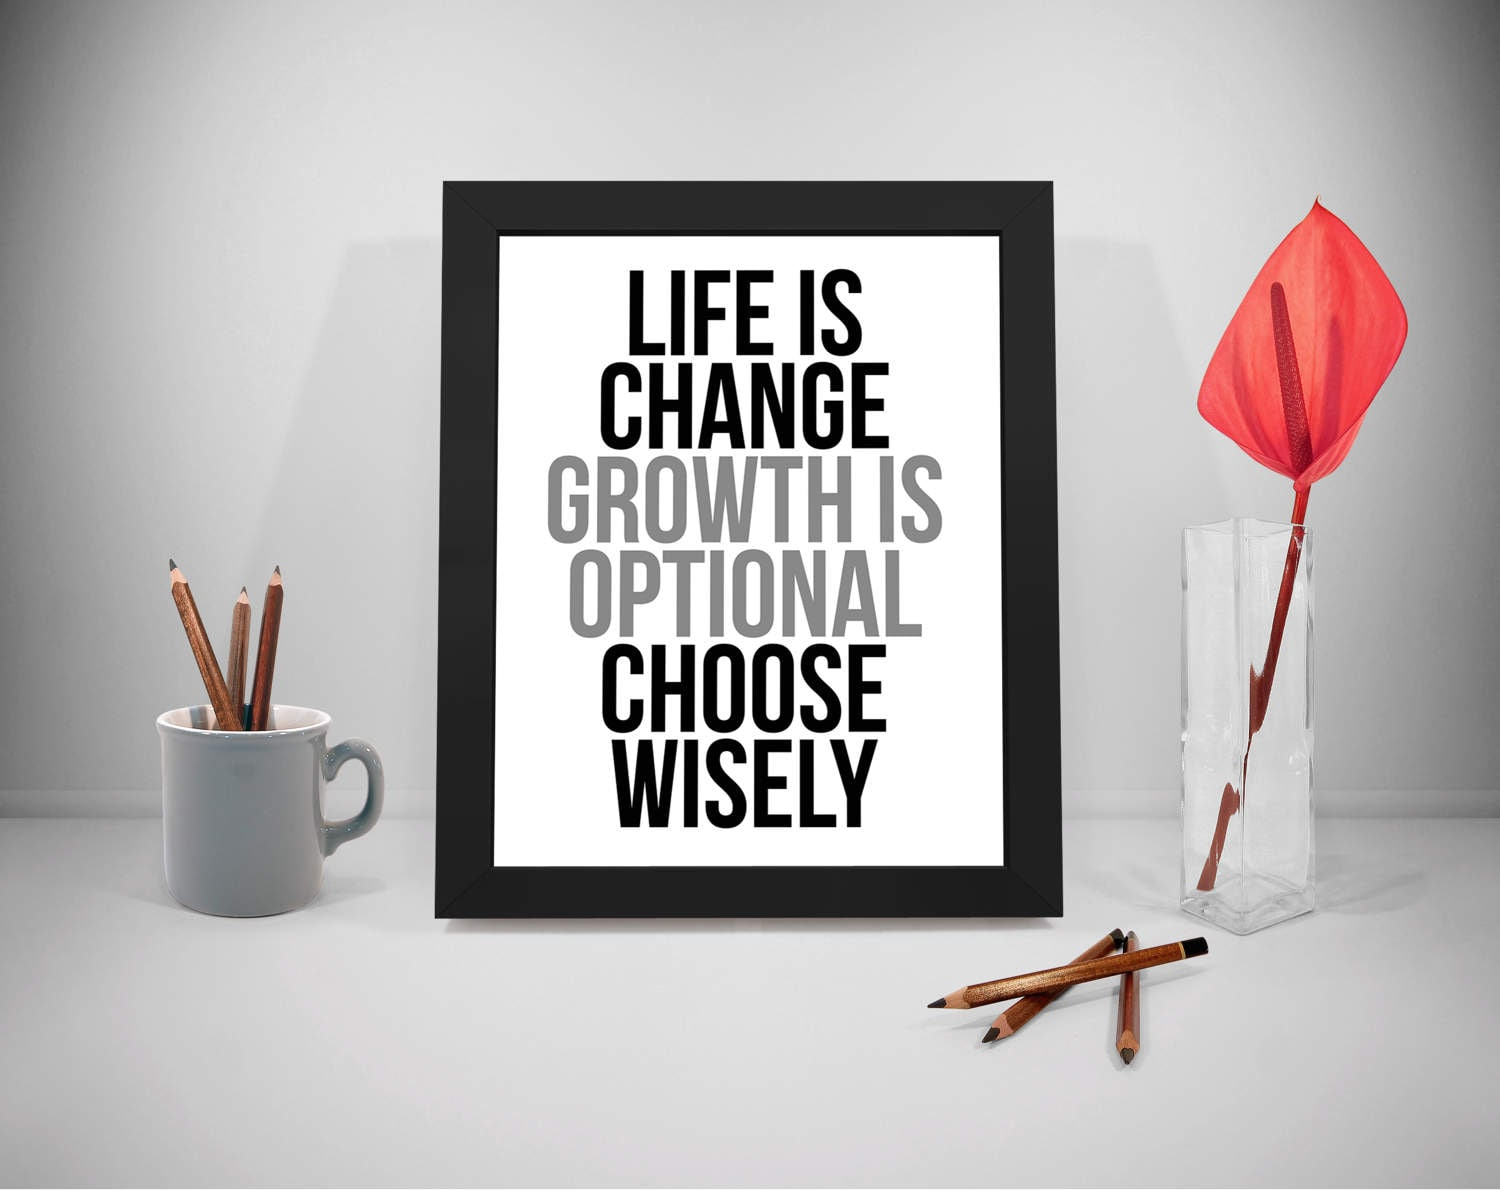 life is change printable quotes growth sayings life print | etsy